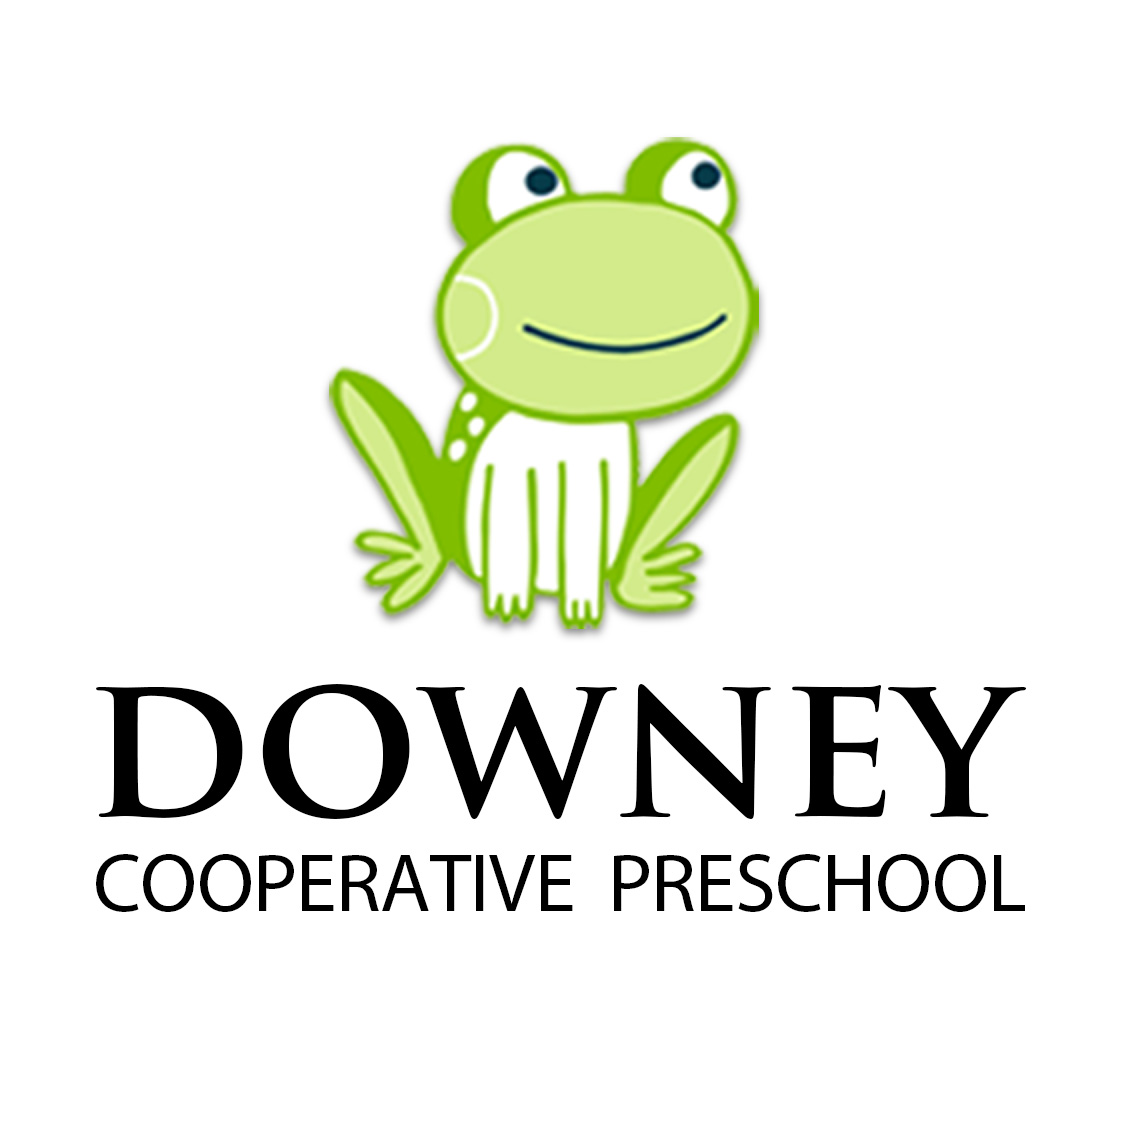 Downey Cooperative Preschool Logo